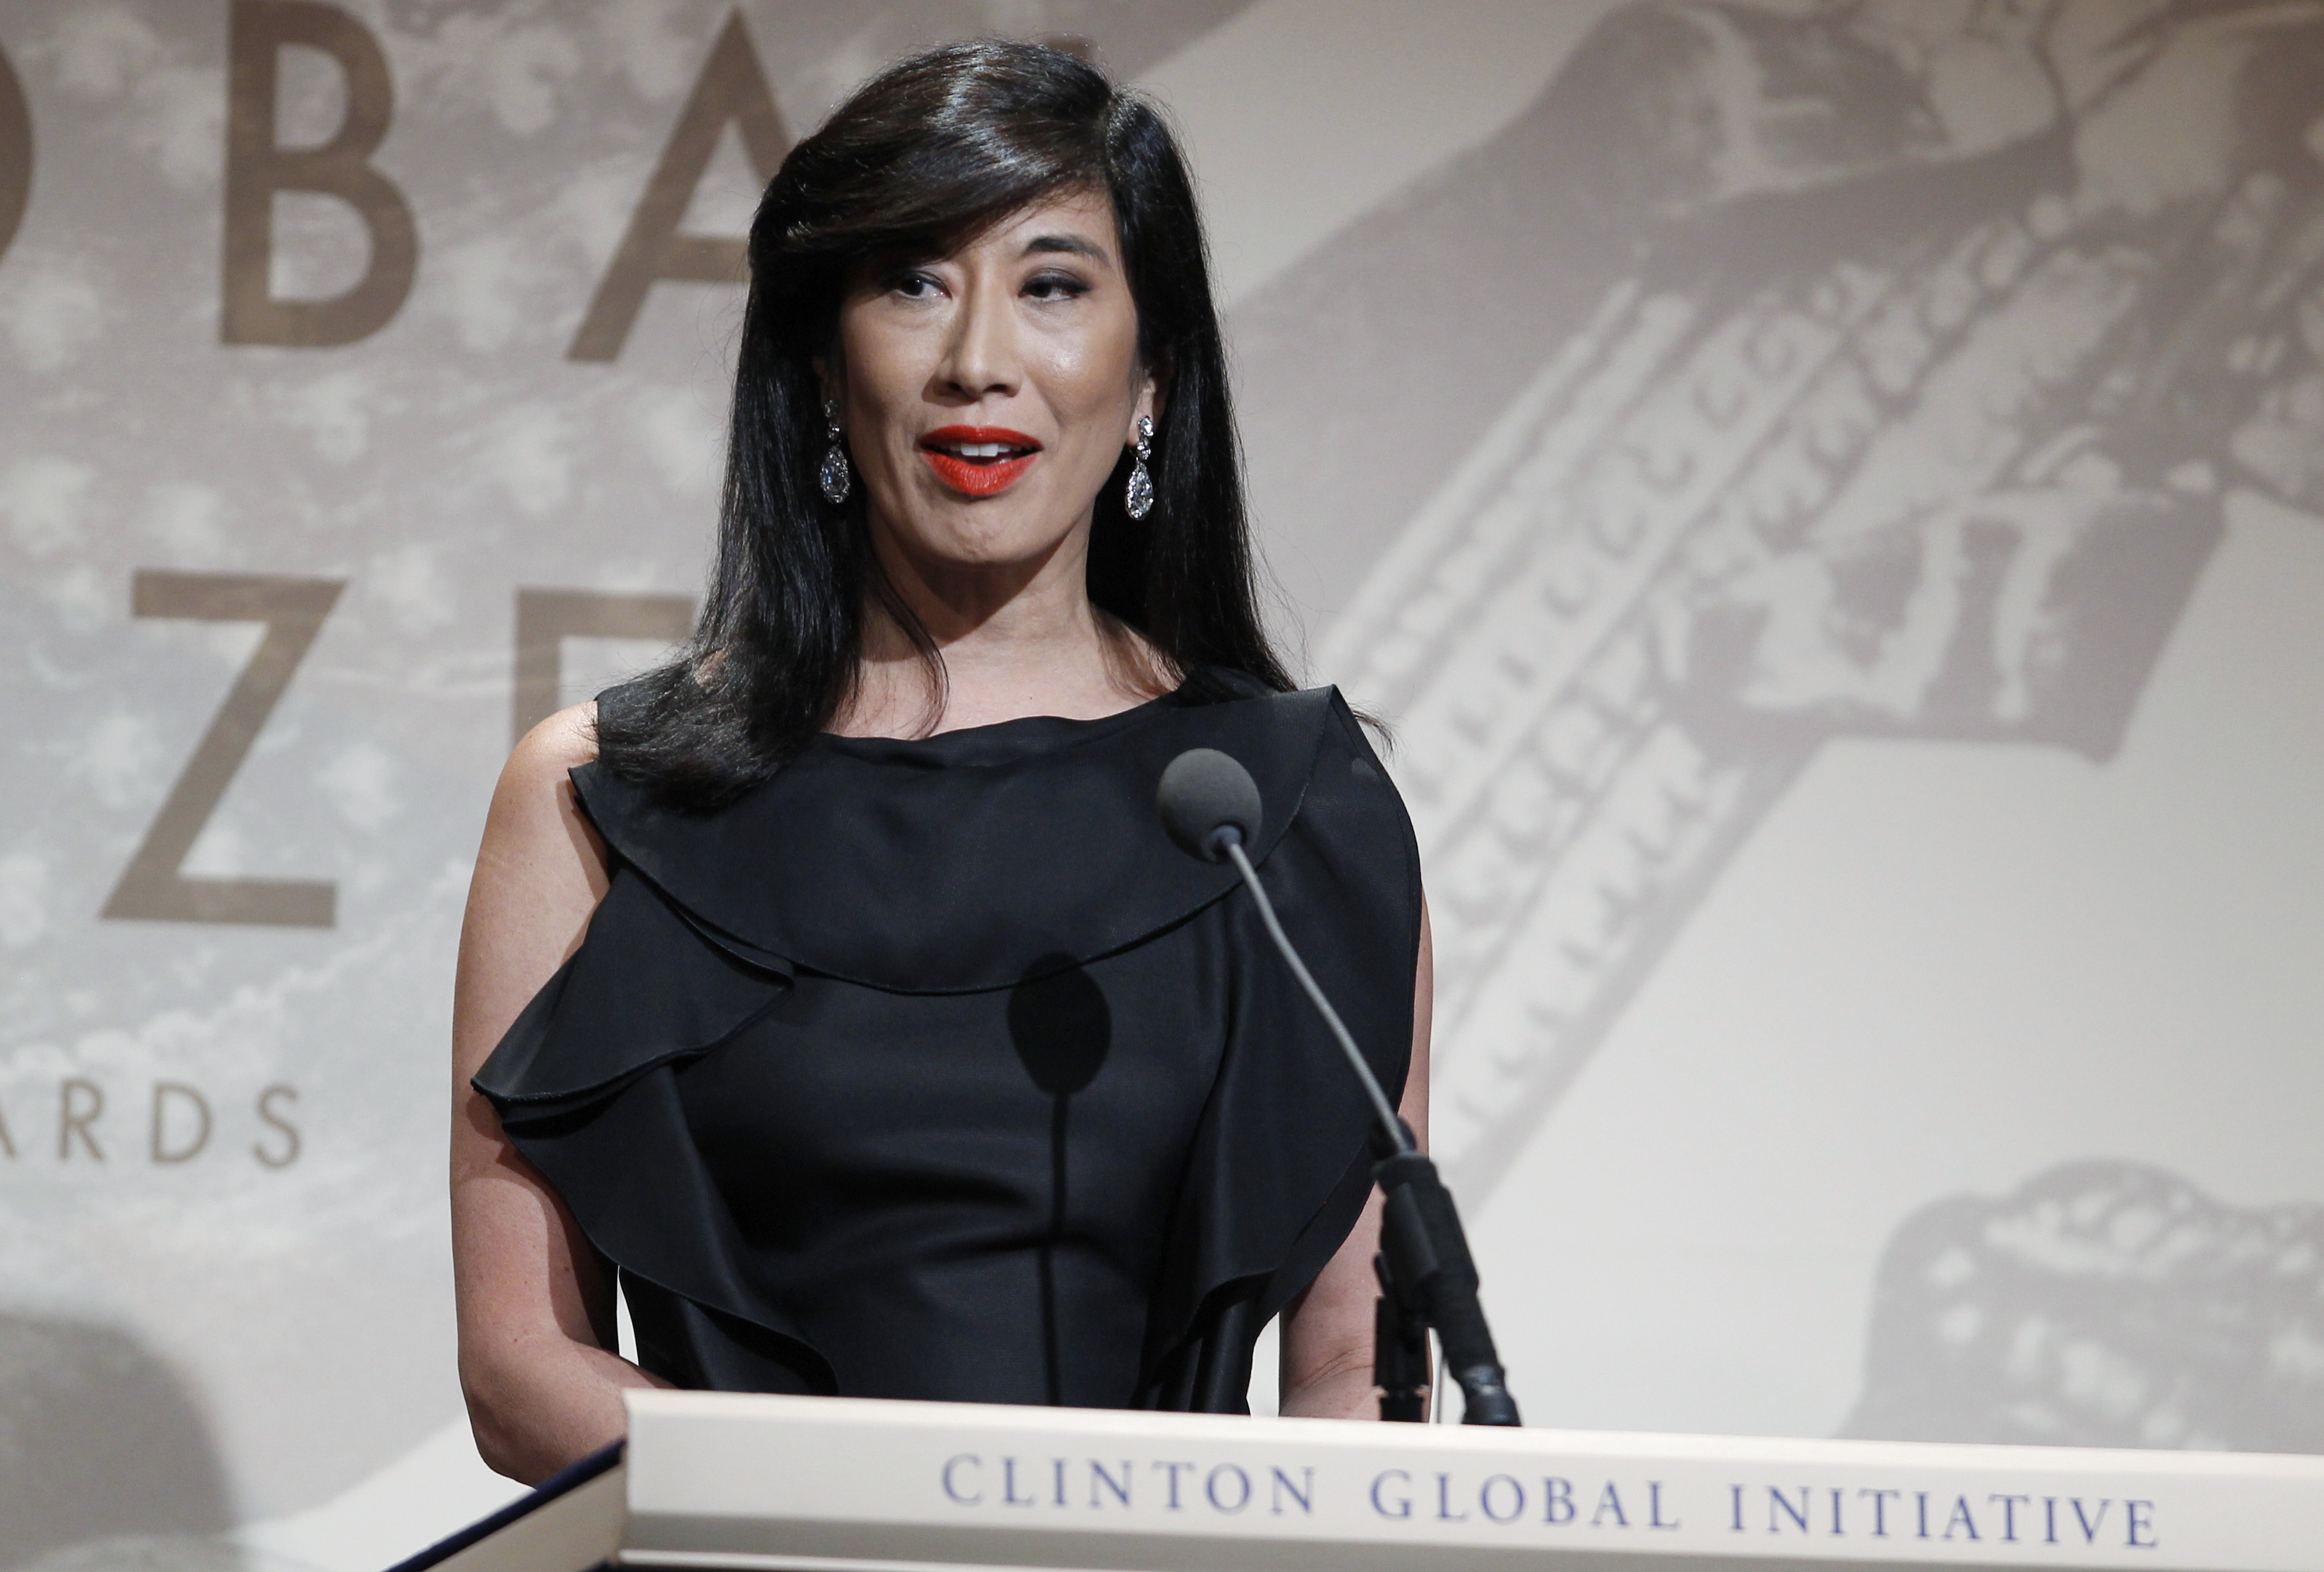 Andrea Jung, CEO of Avon Products Inc., accepts the Leadership in the Corporate Sector award during the Clinton Global Citizen Award ceremony marking the culmination of the Clinton Global Initiative in New York